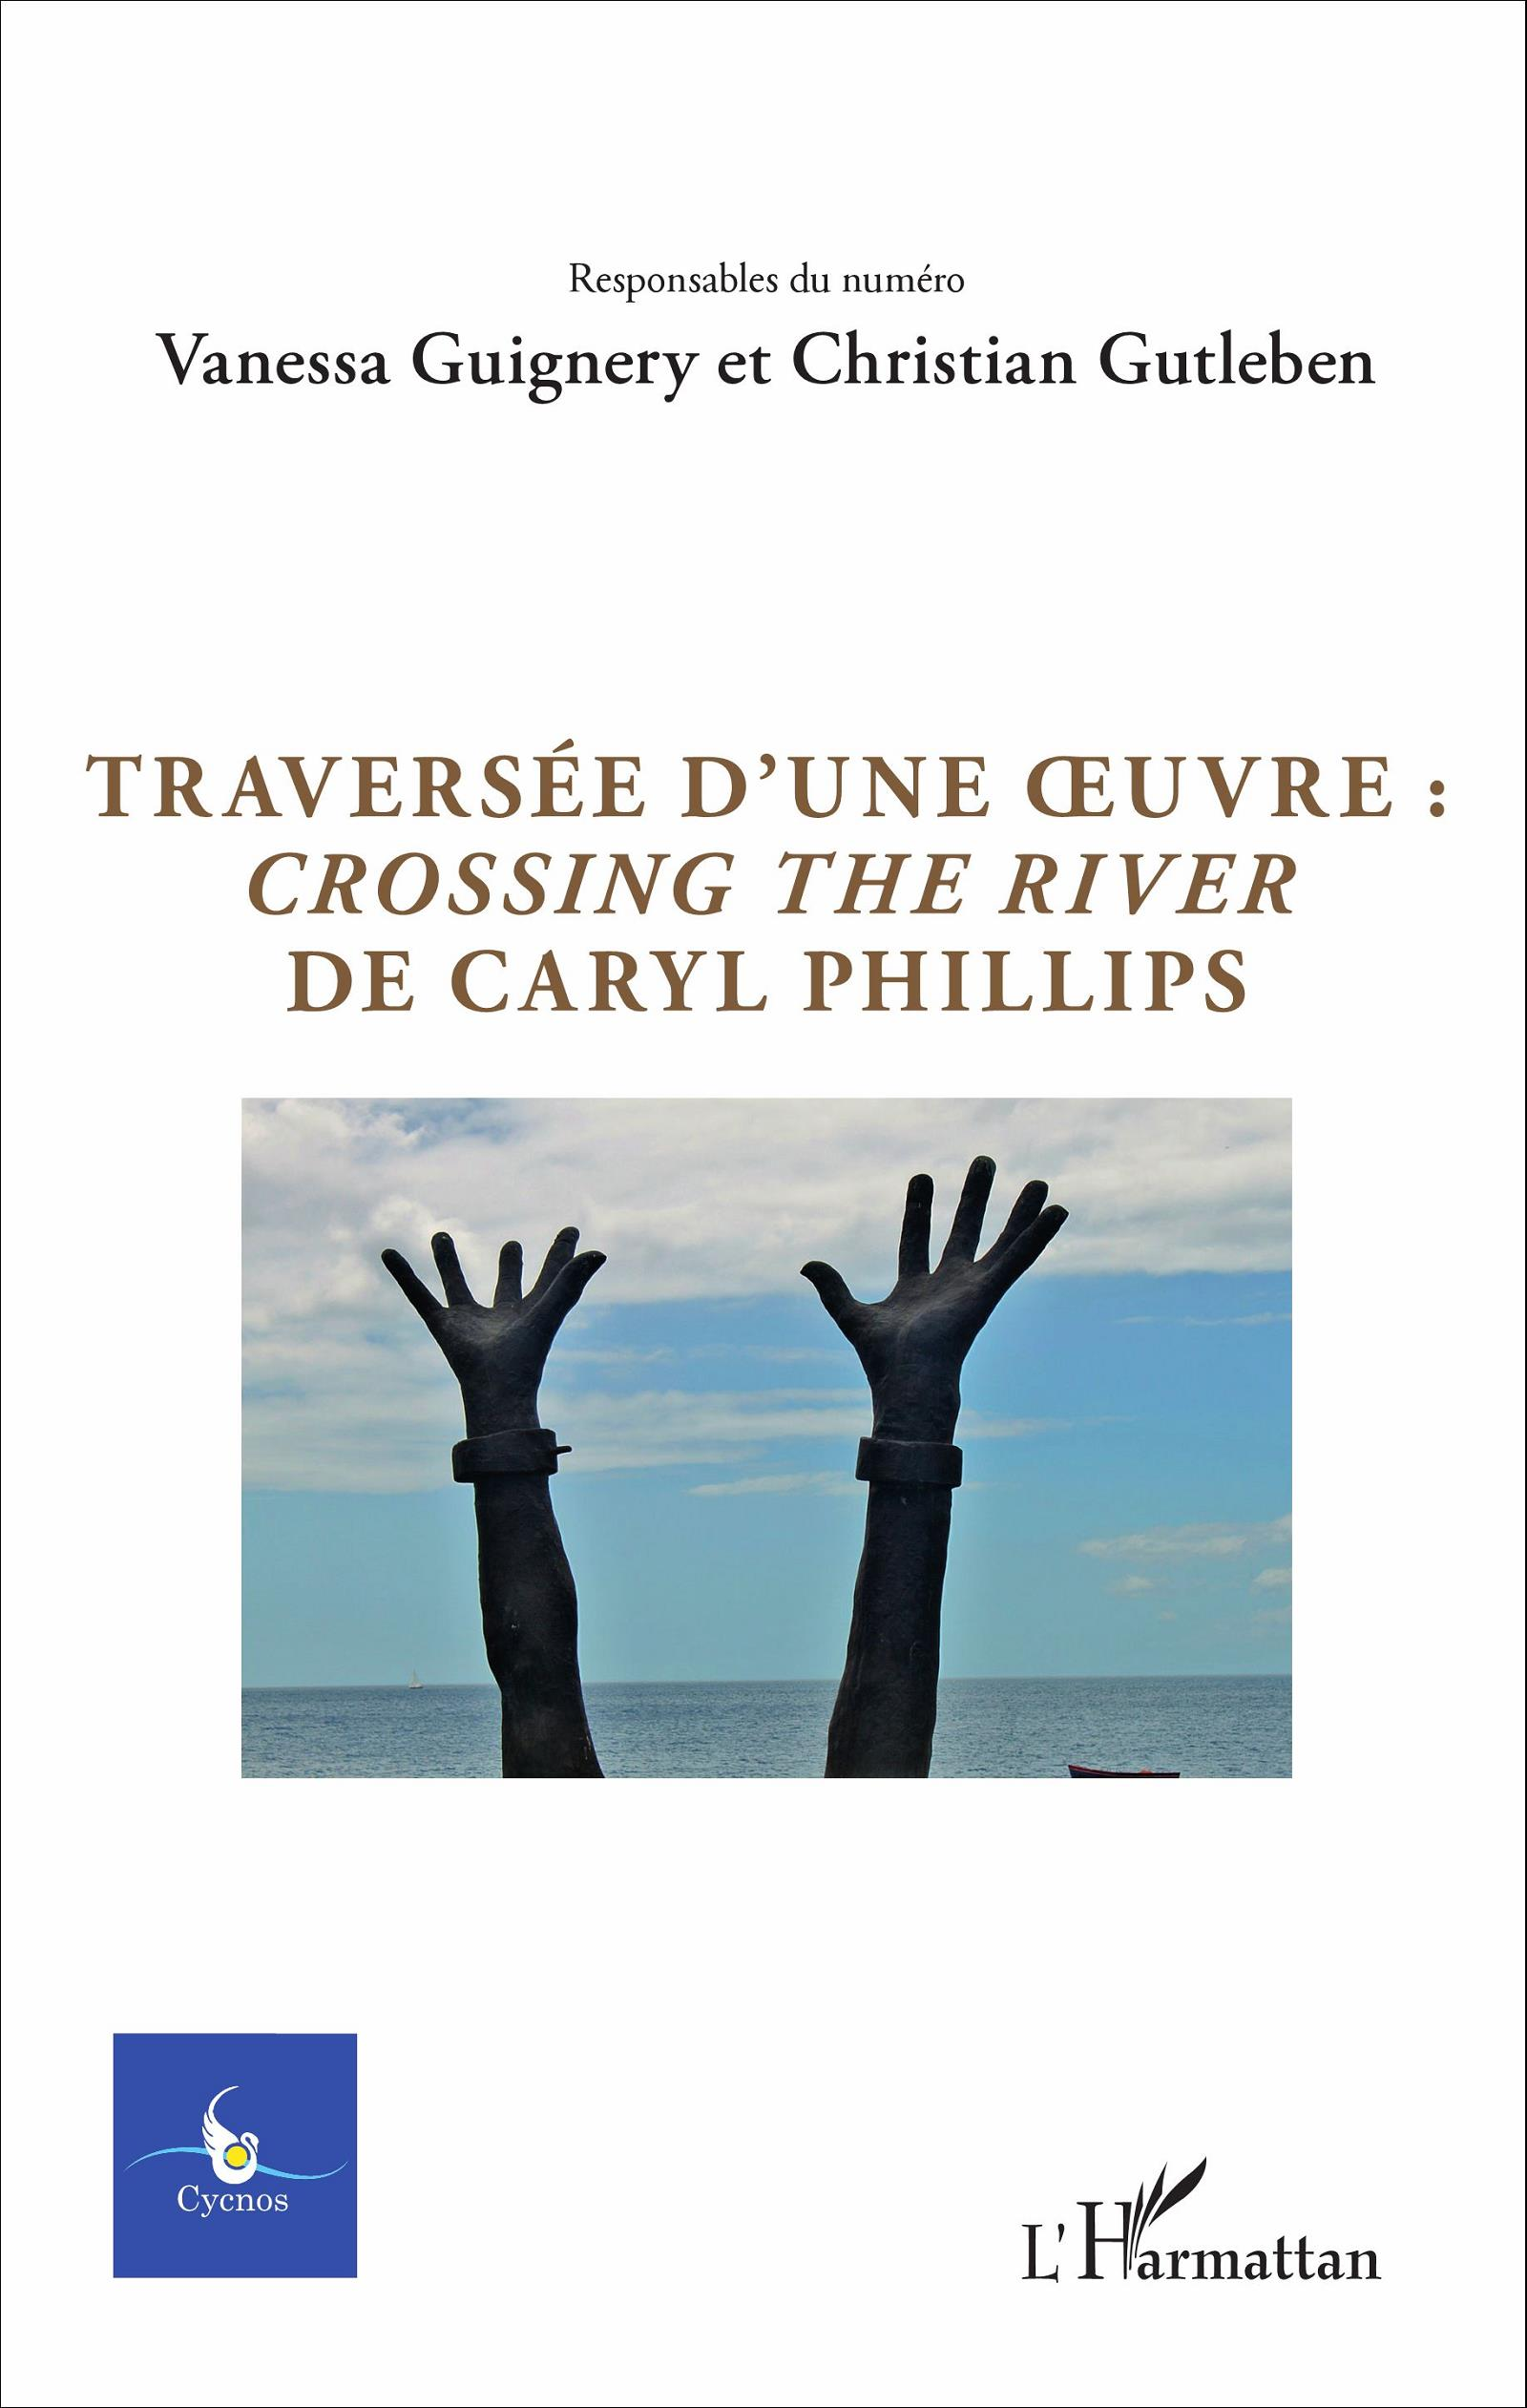 Traversée d'une oeuvre : <em>Crossing the river</em> de Caryl Phillips